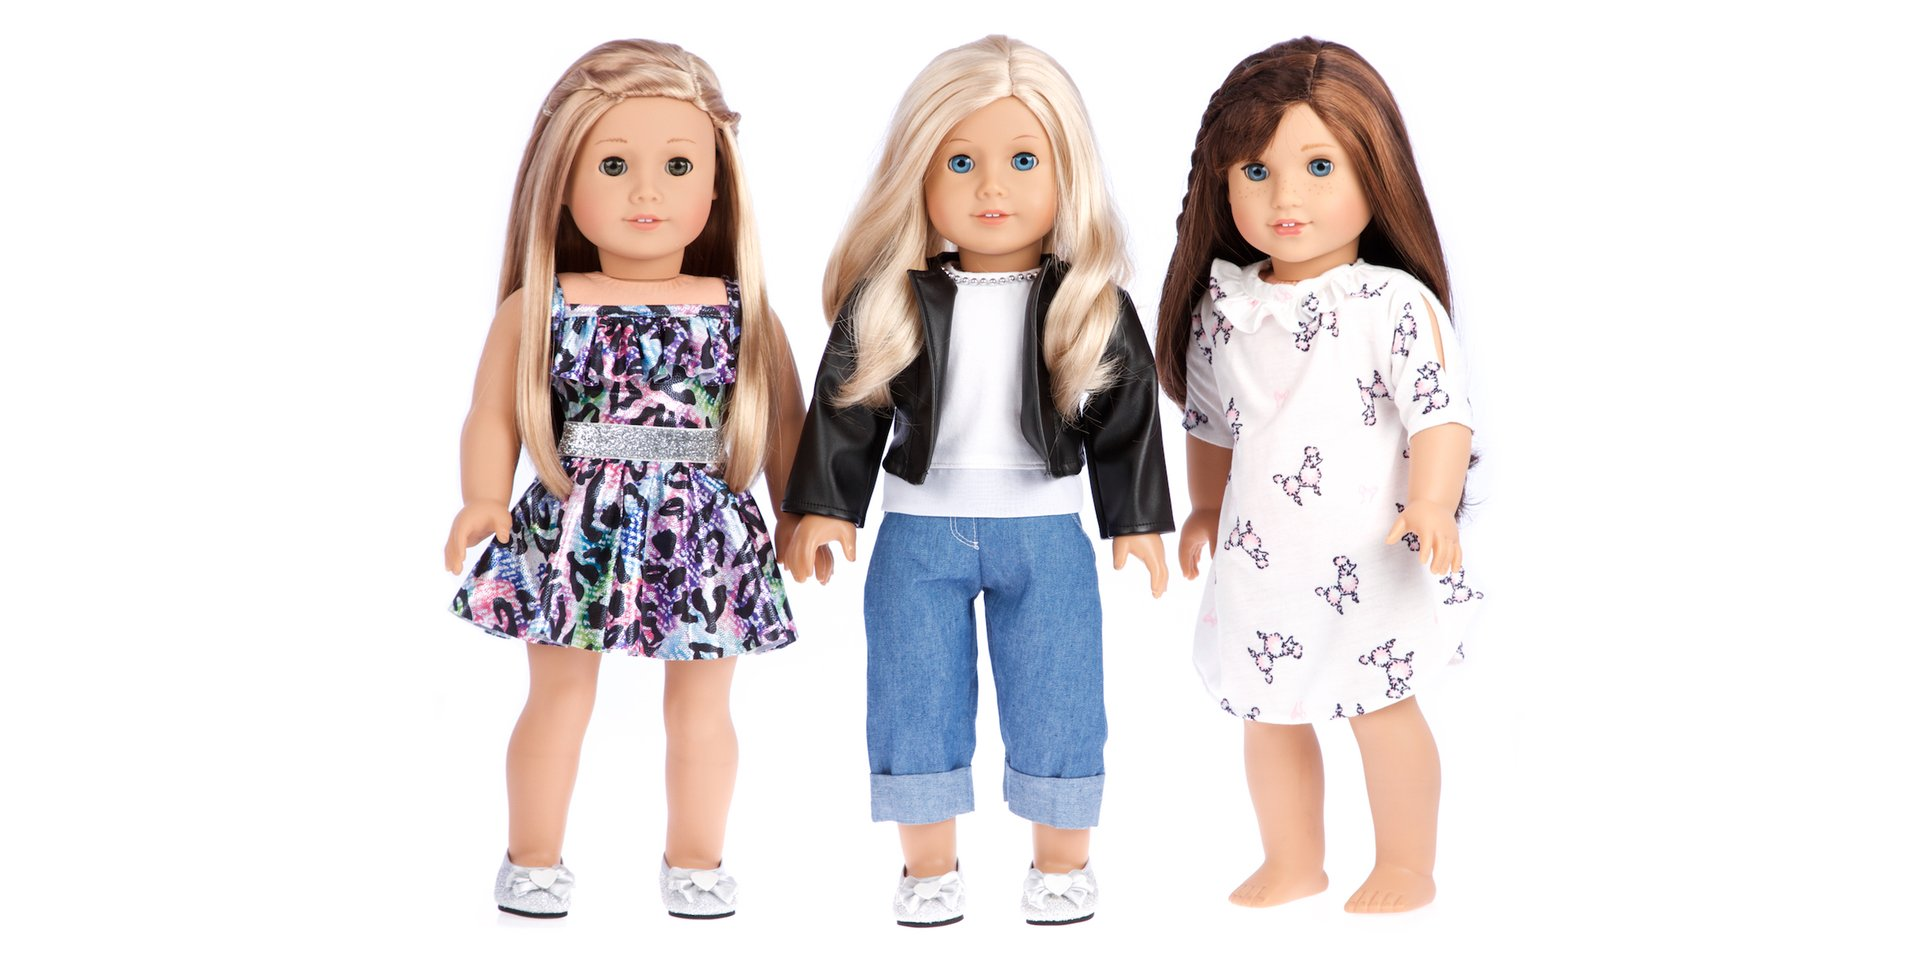 Ultimate Doll Playset - Doll Clothes